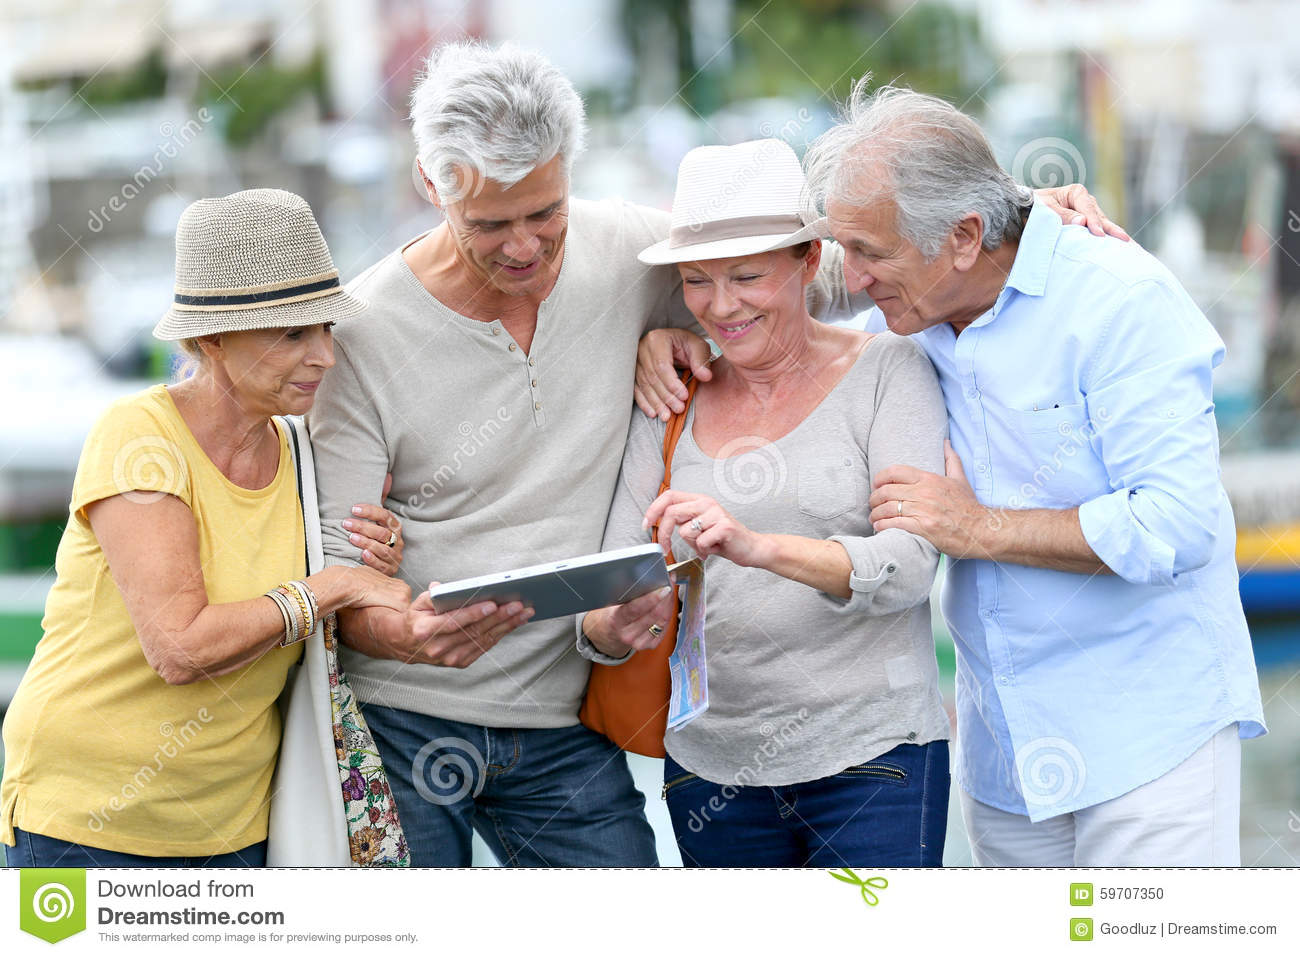 Happy seniors travelling and visiting using tablet